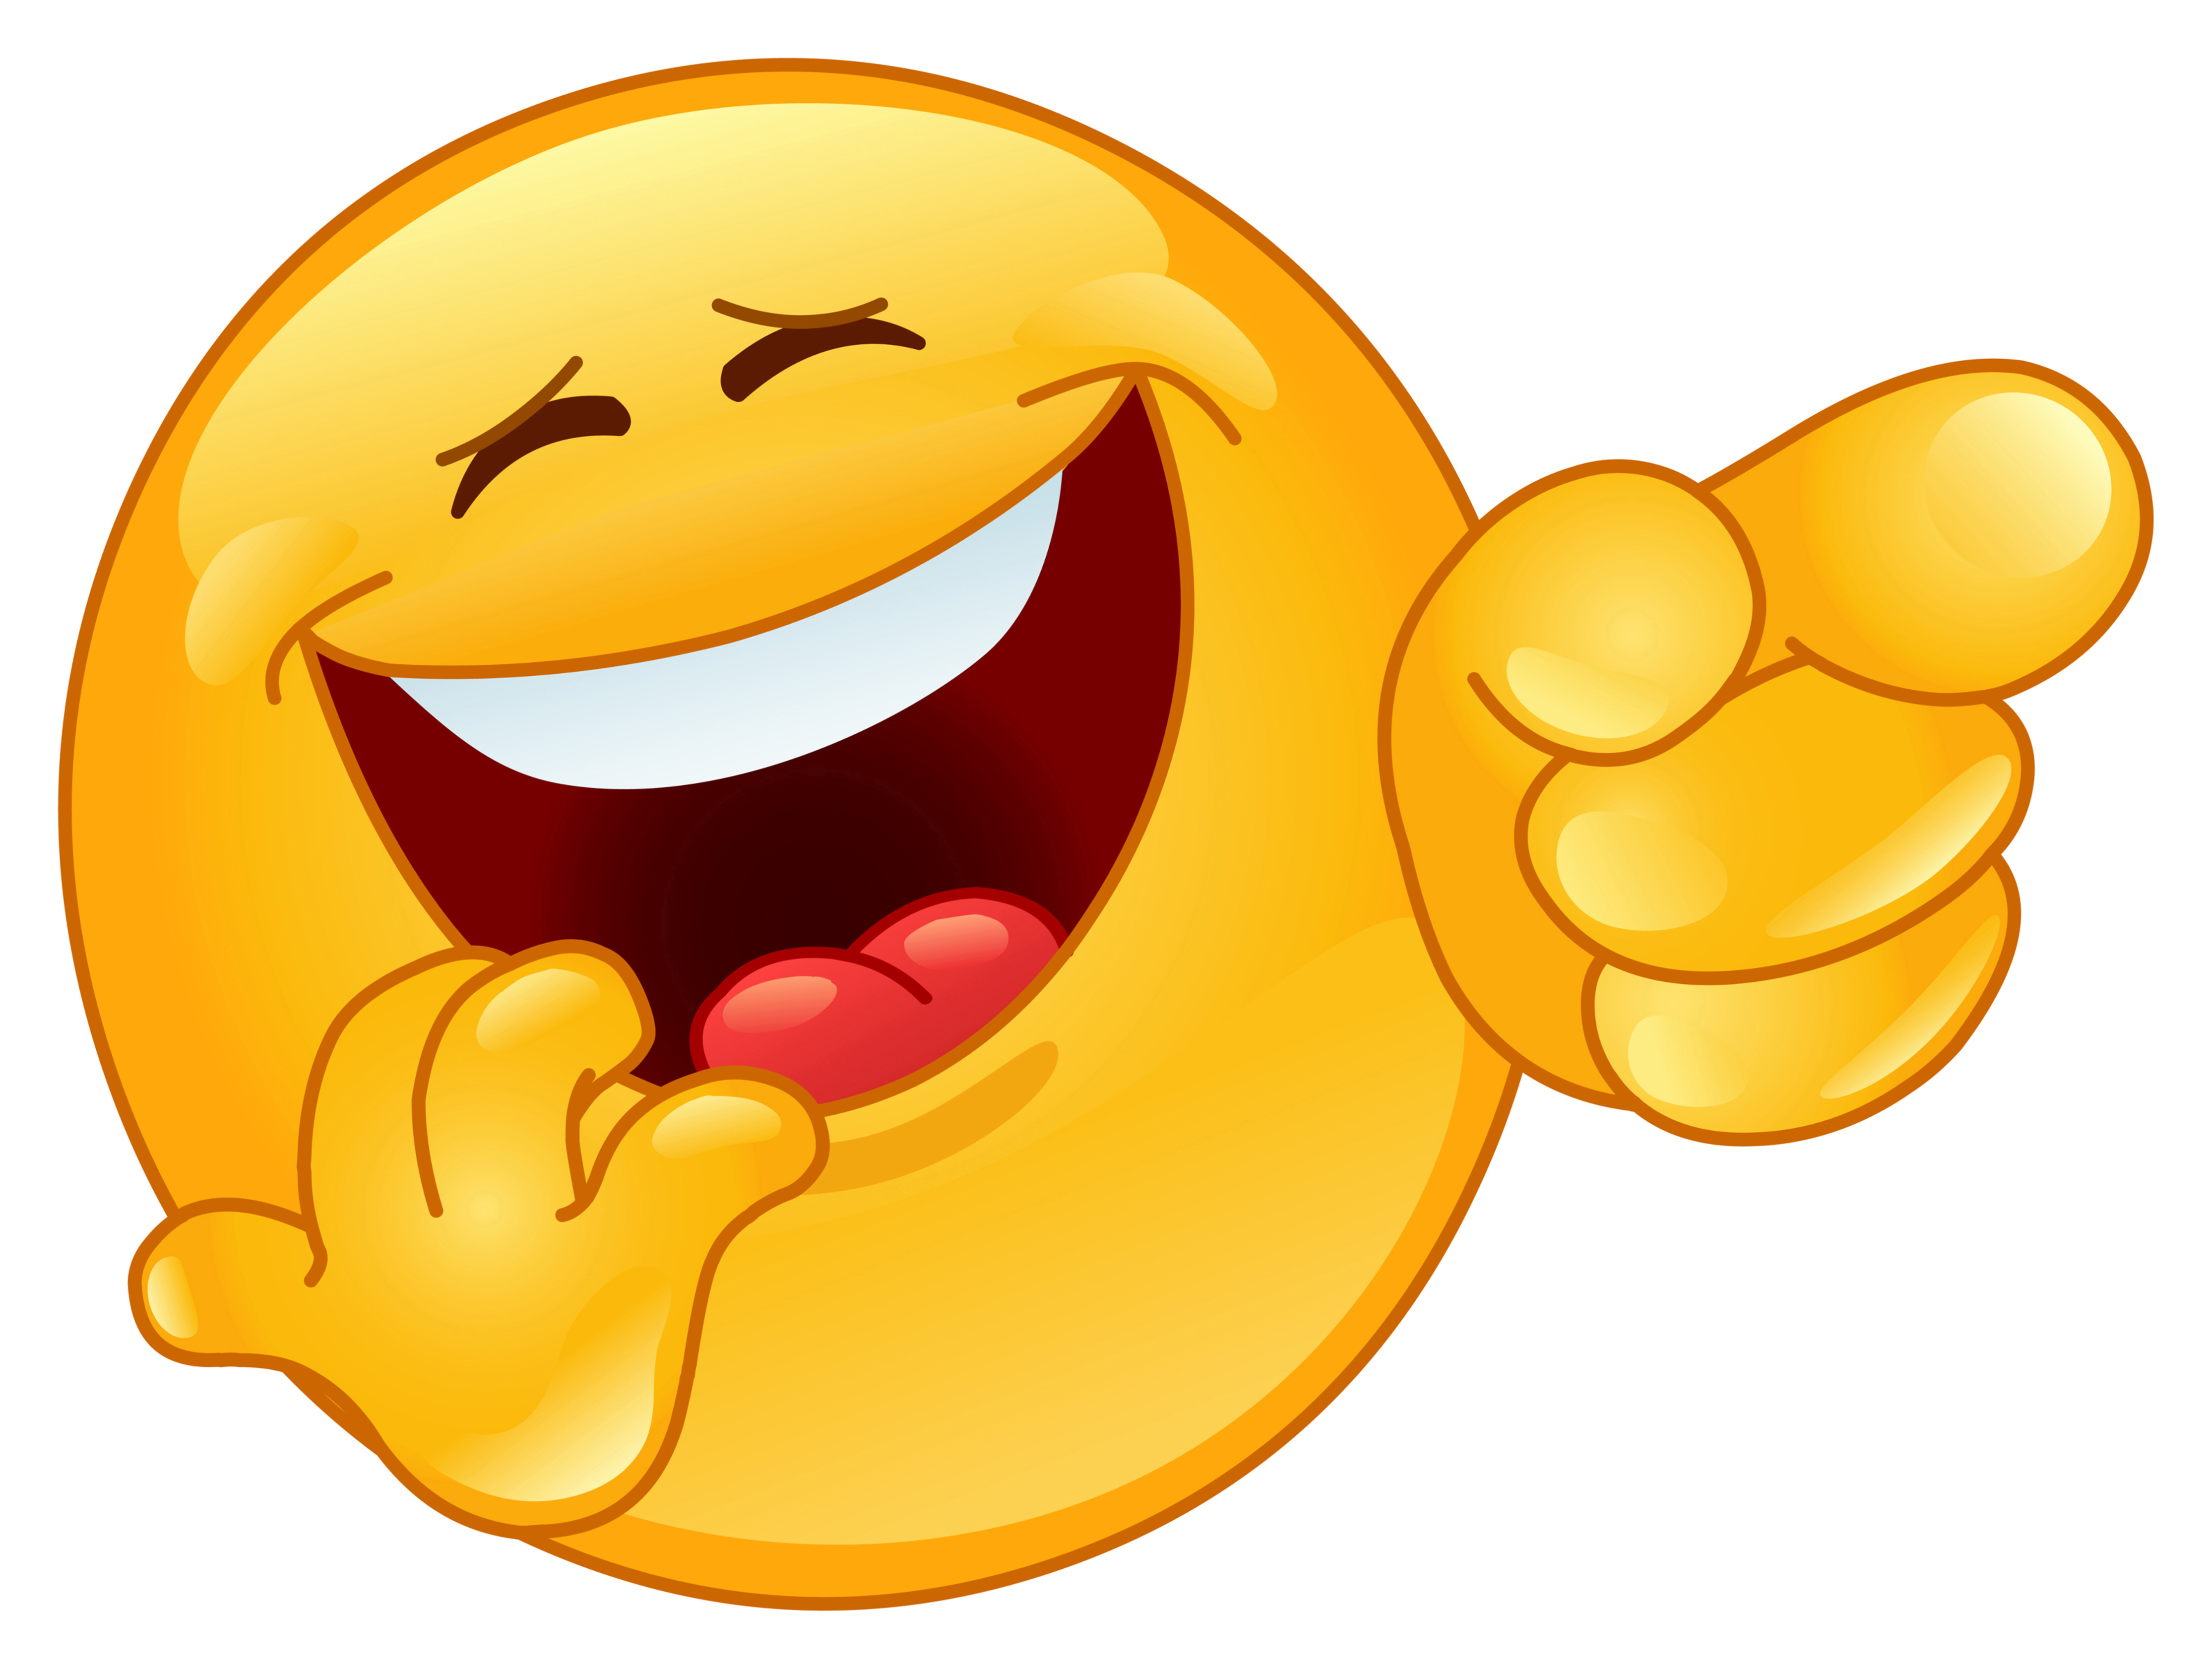 Free Smiley Humor Cliparts, Download Free Clip Art, Free.